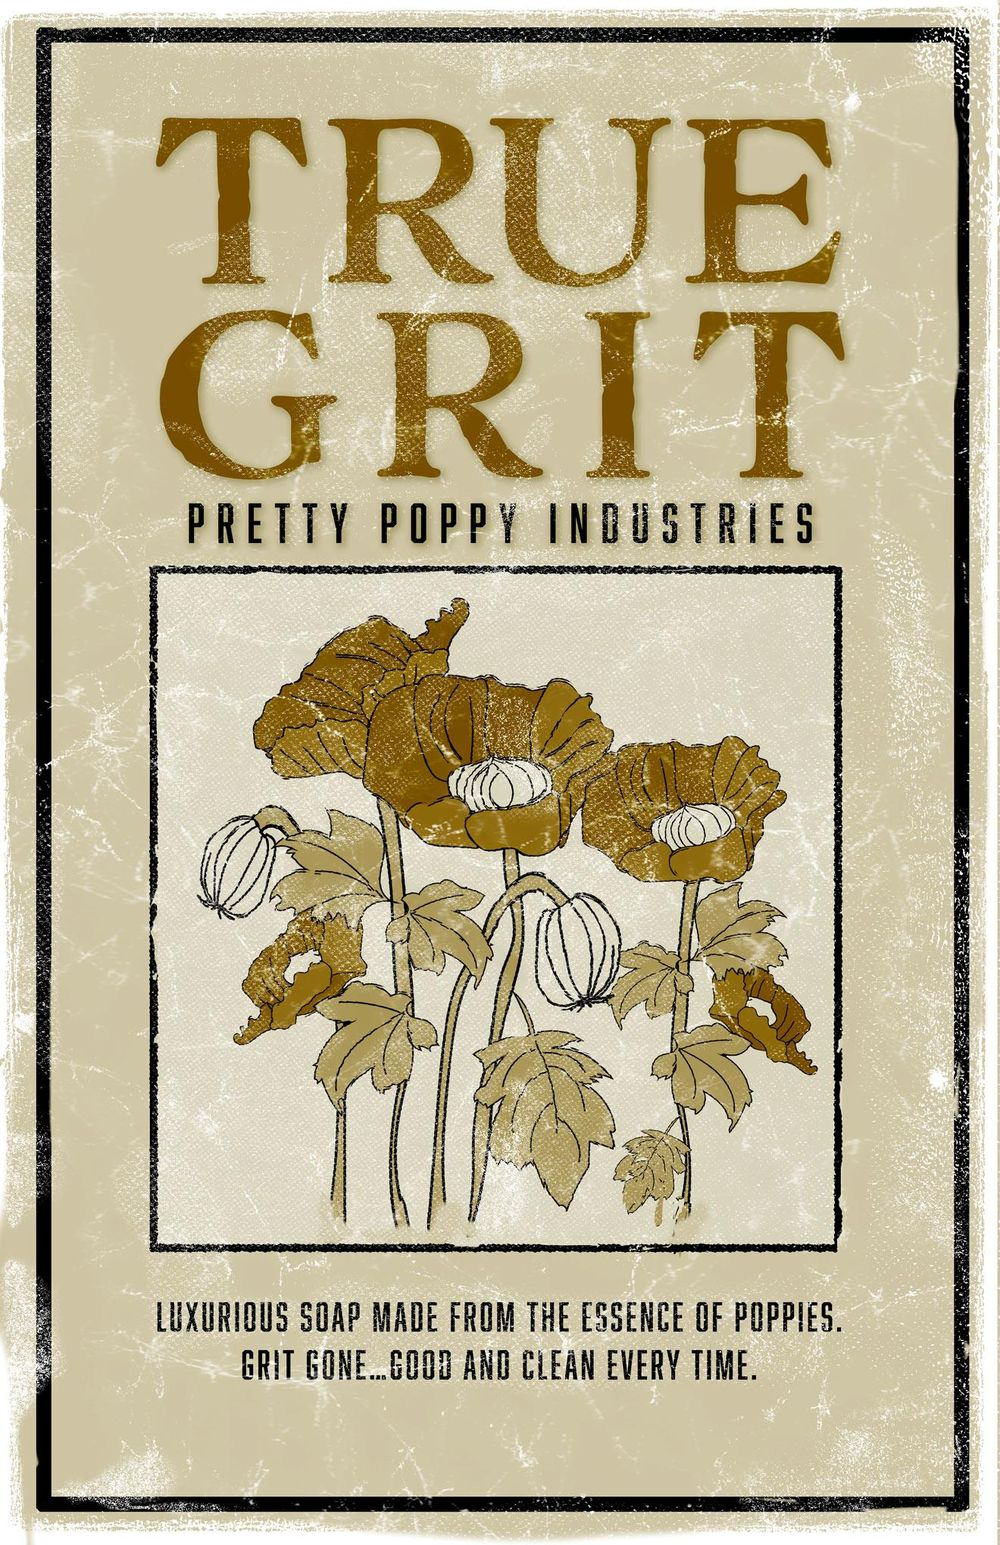 wash away the grit - image 1 - student project